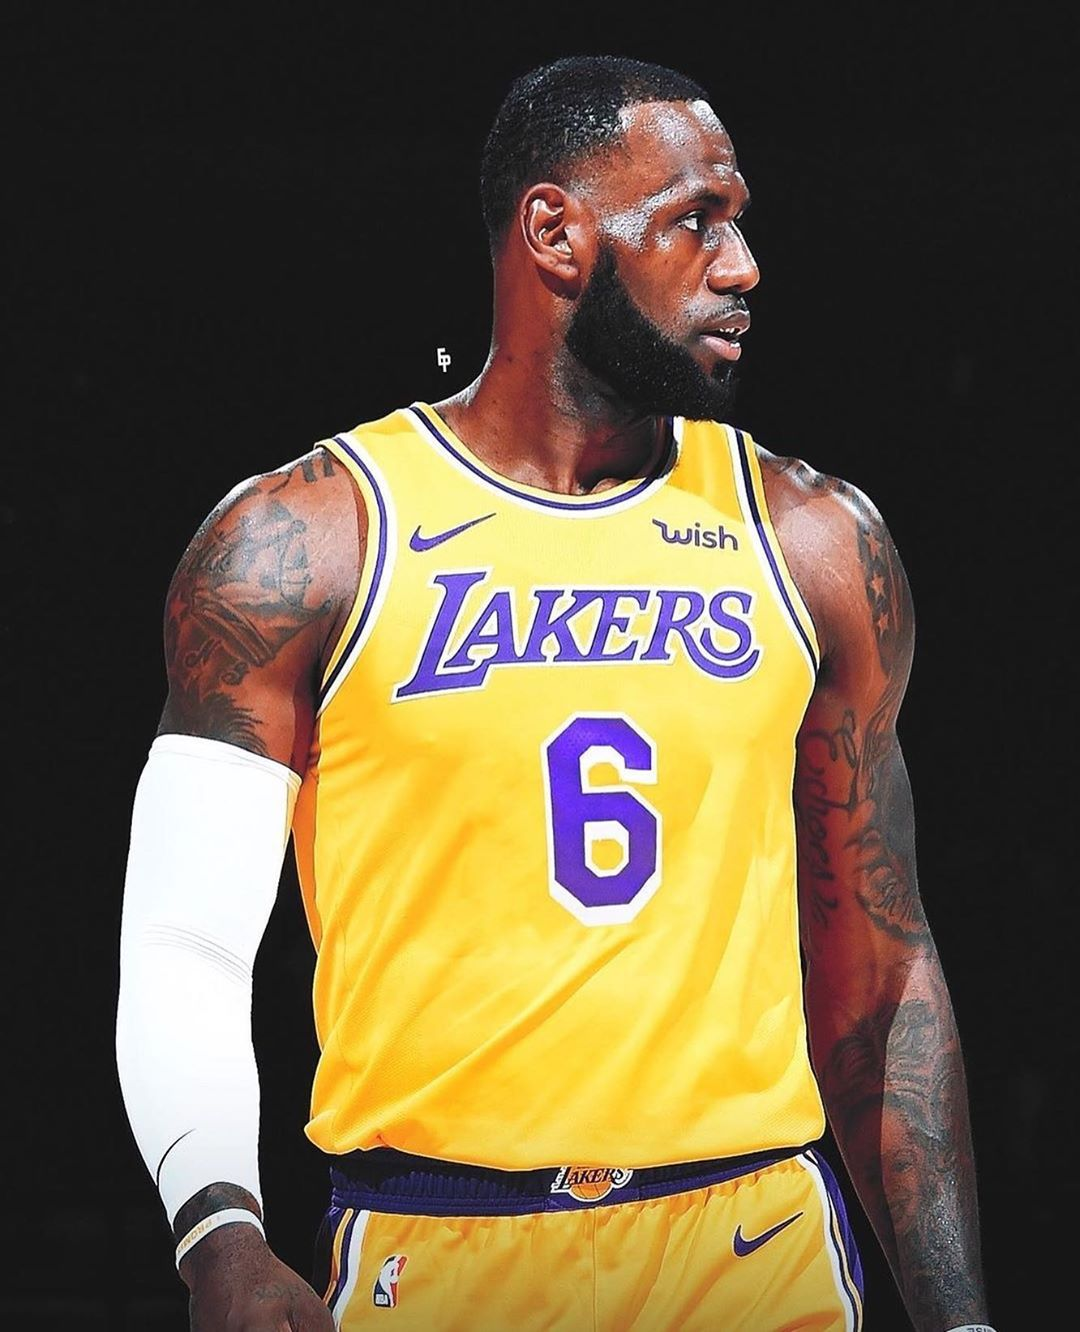 lebron james jersey lakers 6 Off 60% - www.bashhguidelines.org